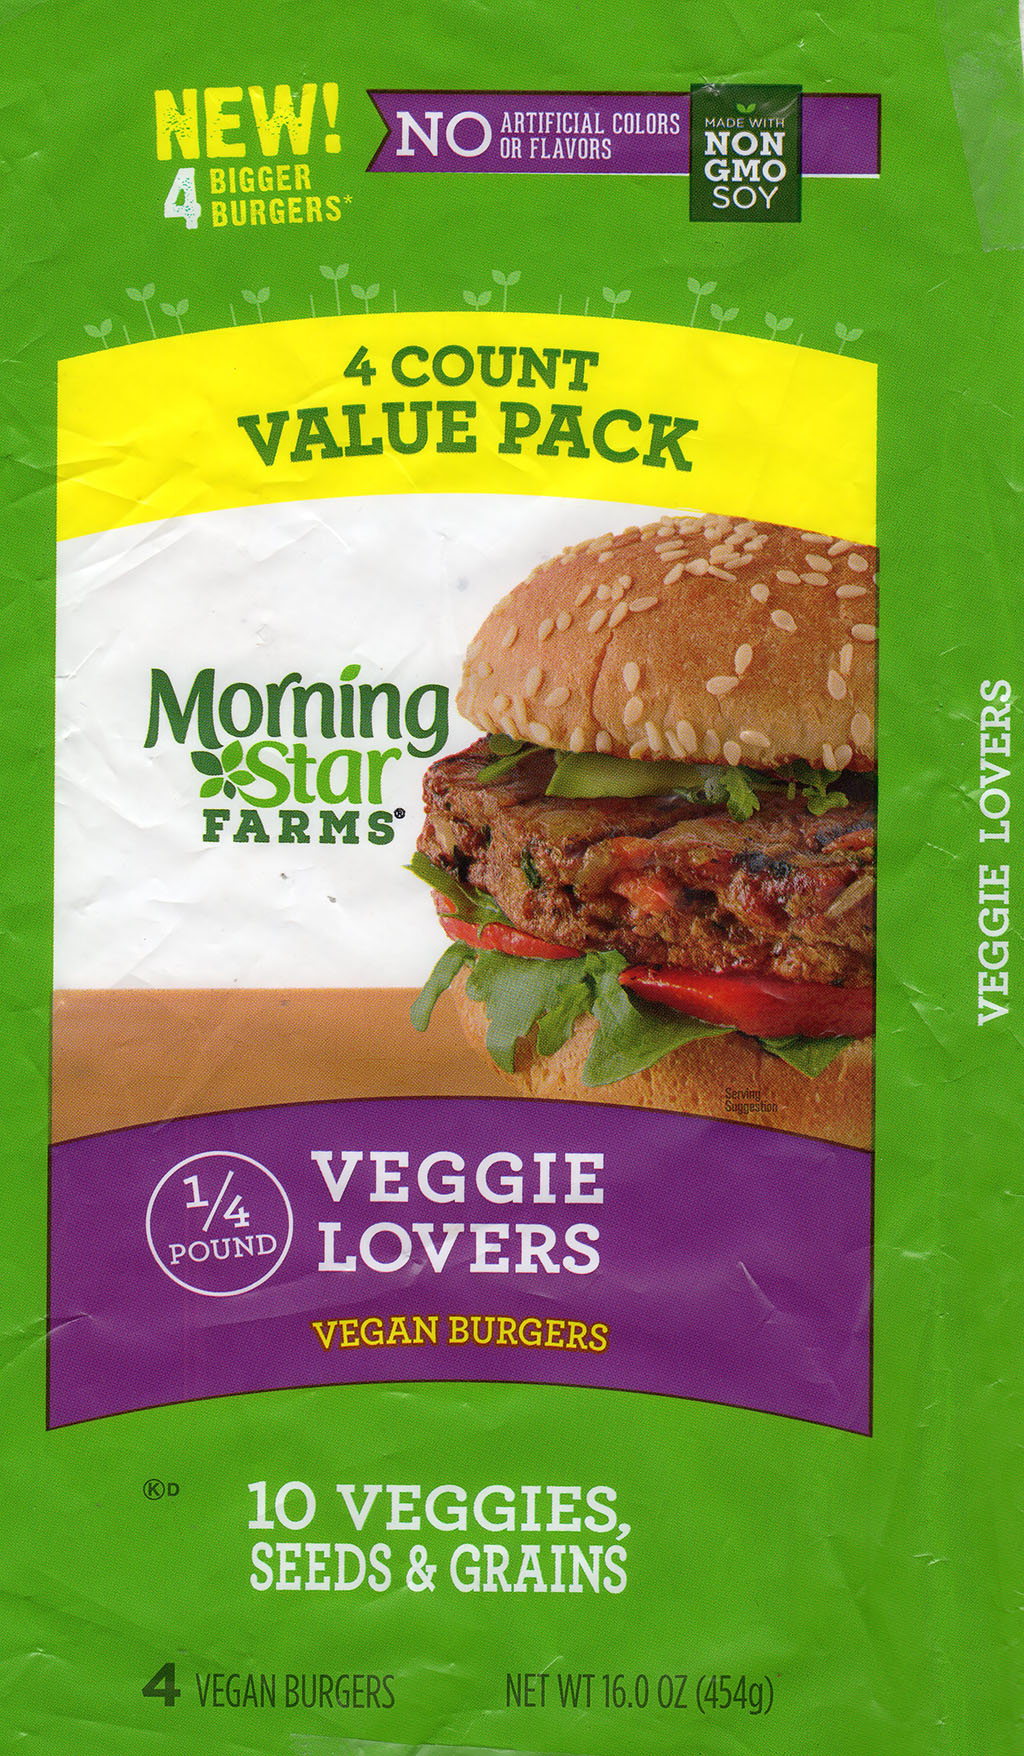 MorningStar Farms Veggie Lovers Vegan Burgers package front